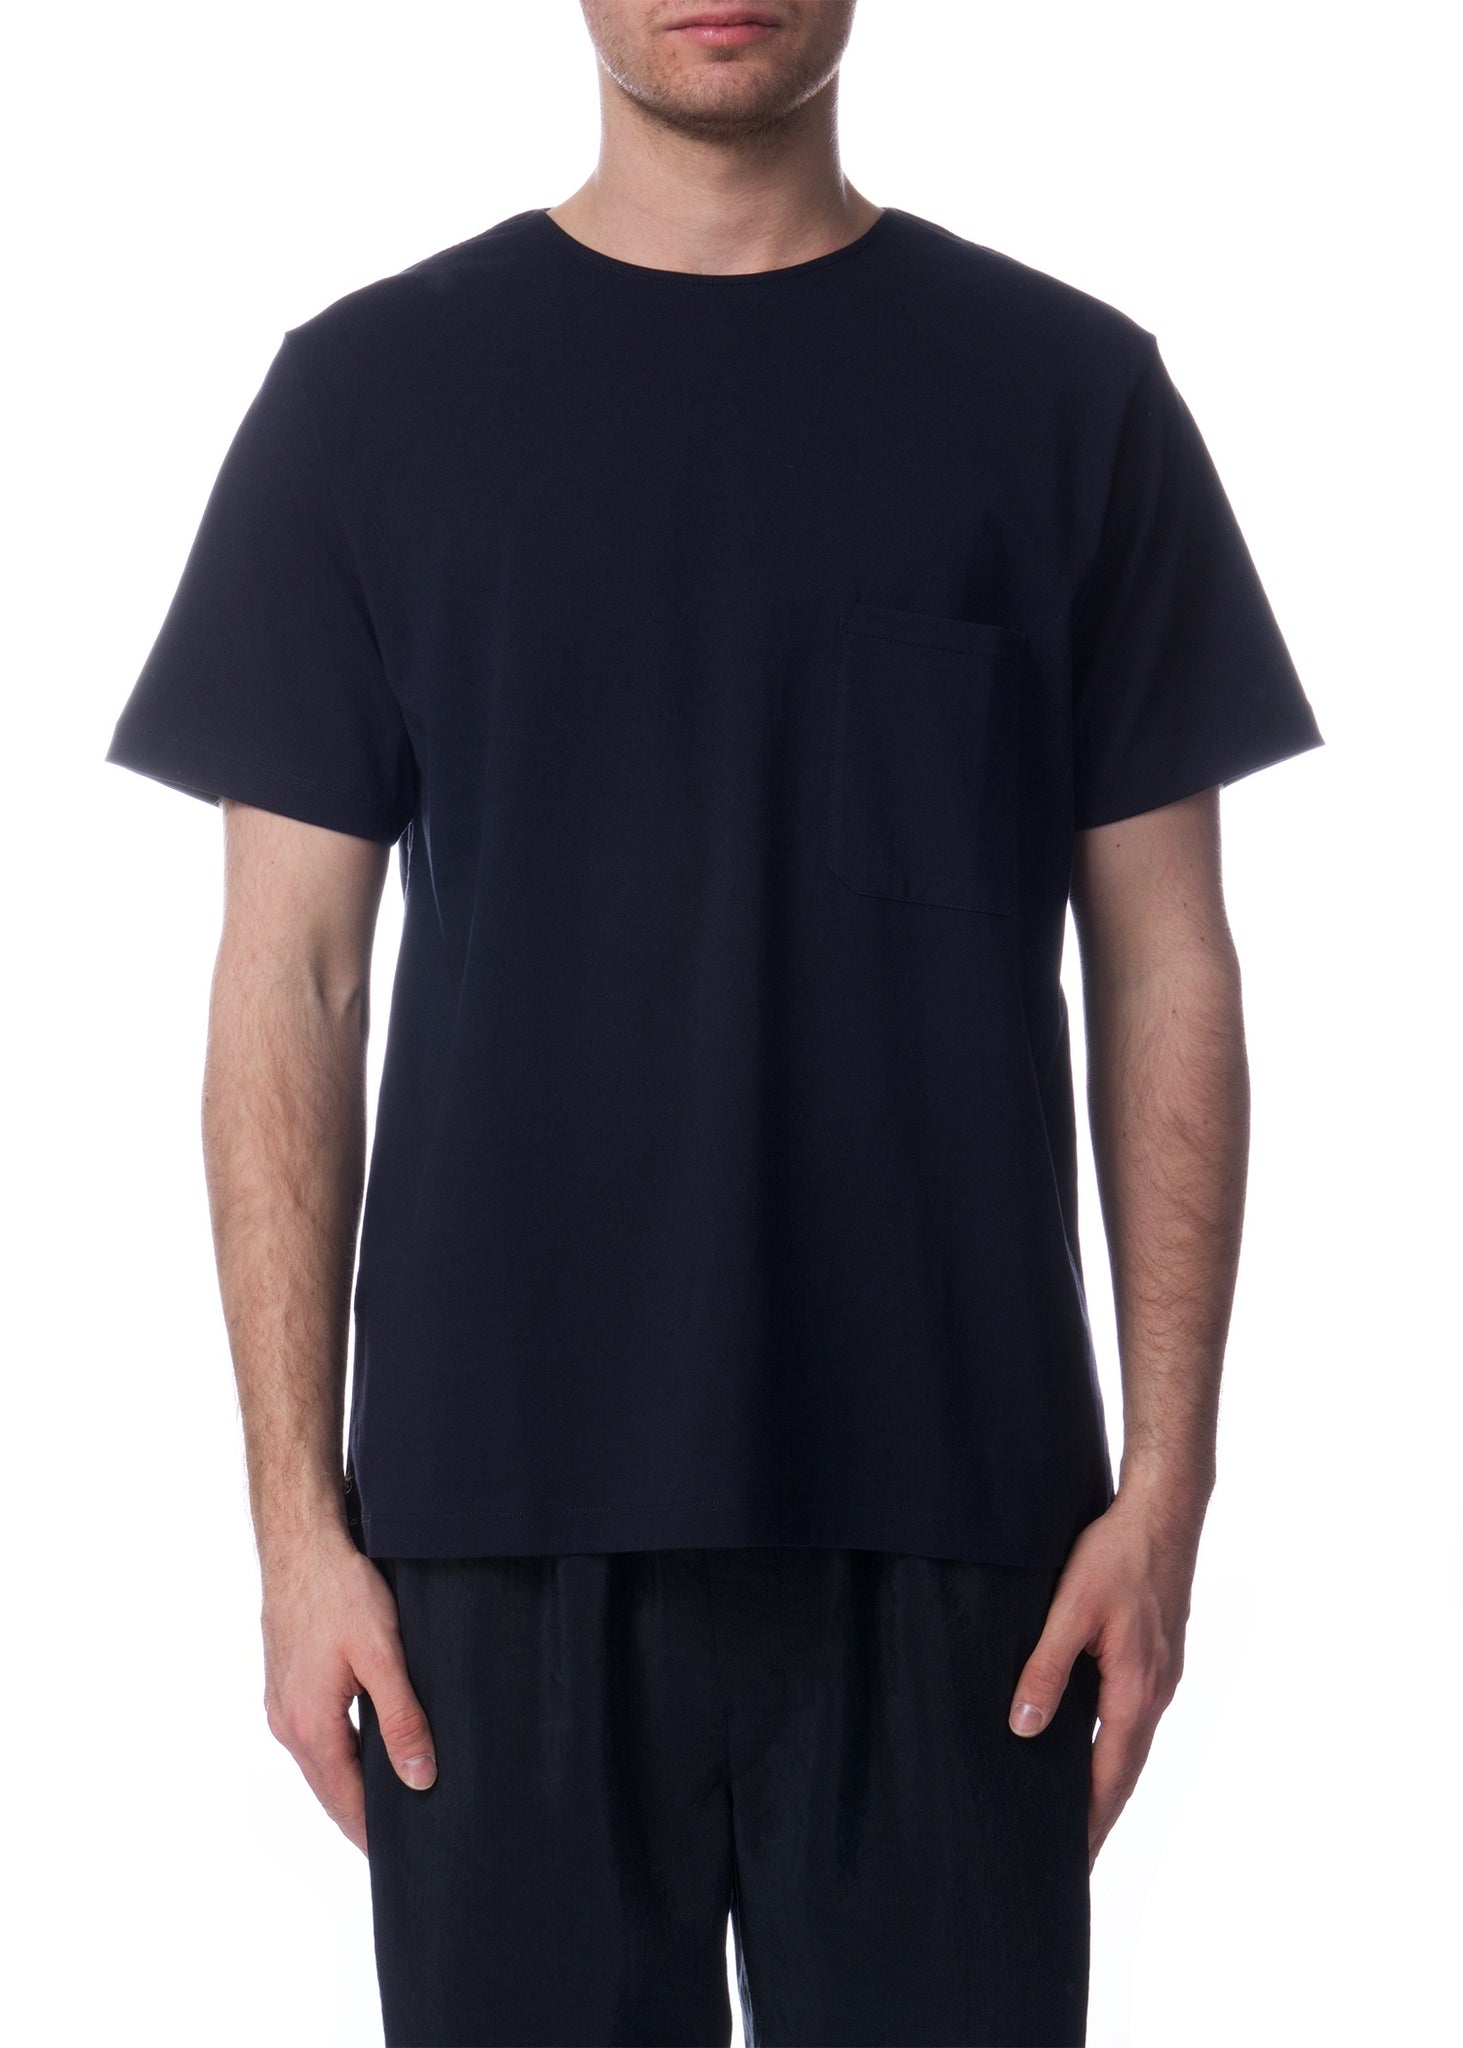 T-shirt à Manches Courtes Marine|Navy Short Sleeve T-shirt